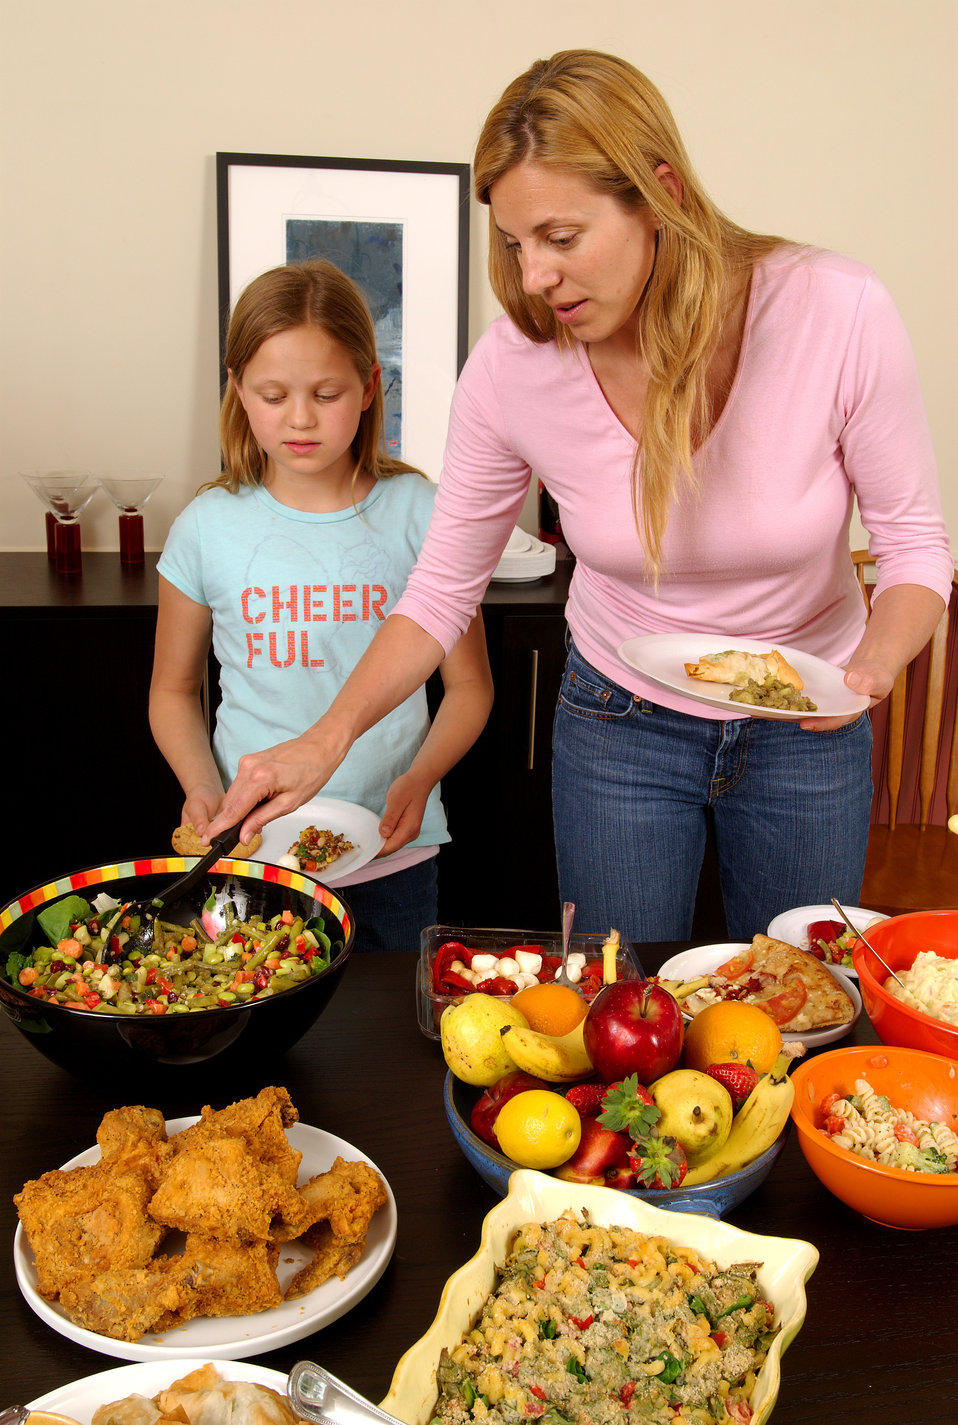 This image depicts a young girl and her mother, serving themselves at a dining table, atop which was plated a large quantity of foods repres